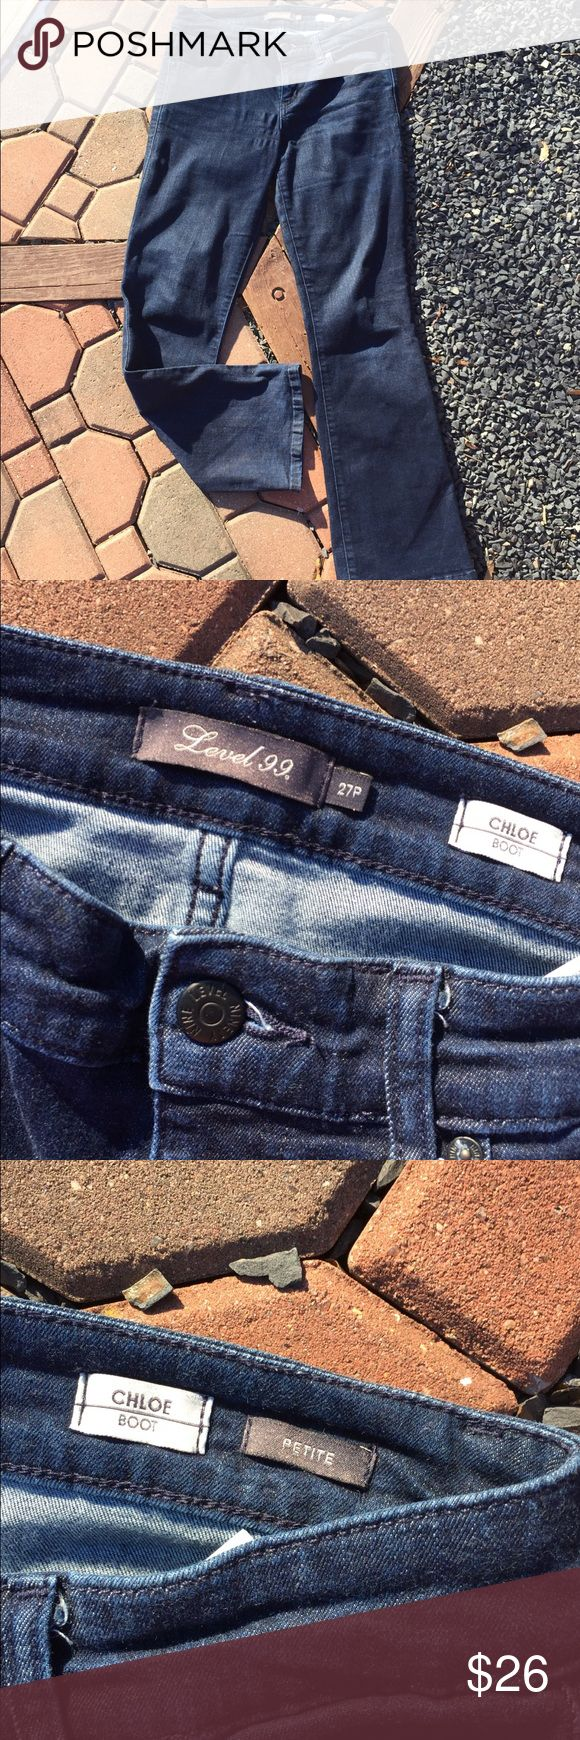 """Anthropologie Level 99 Chloe Bootcut Jeans 27 P Size 27 Petite. Waist flat: 14.5"""". Front Rise: 8"""". Inseam: 29"""" Super gently preowned. Be sure to view the other items in our closet. We offer  women's, Mens and kids items in a variety of sizes. Bundle and save!! We love reasonable offers!! Thank you for viewing our item!! Anthropologie Jeans Boot Cut"""